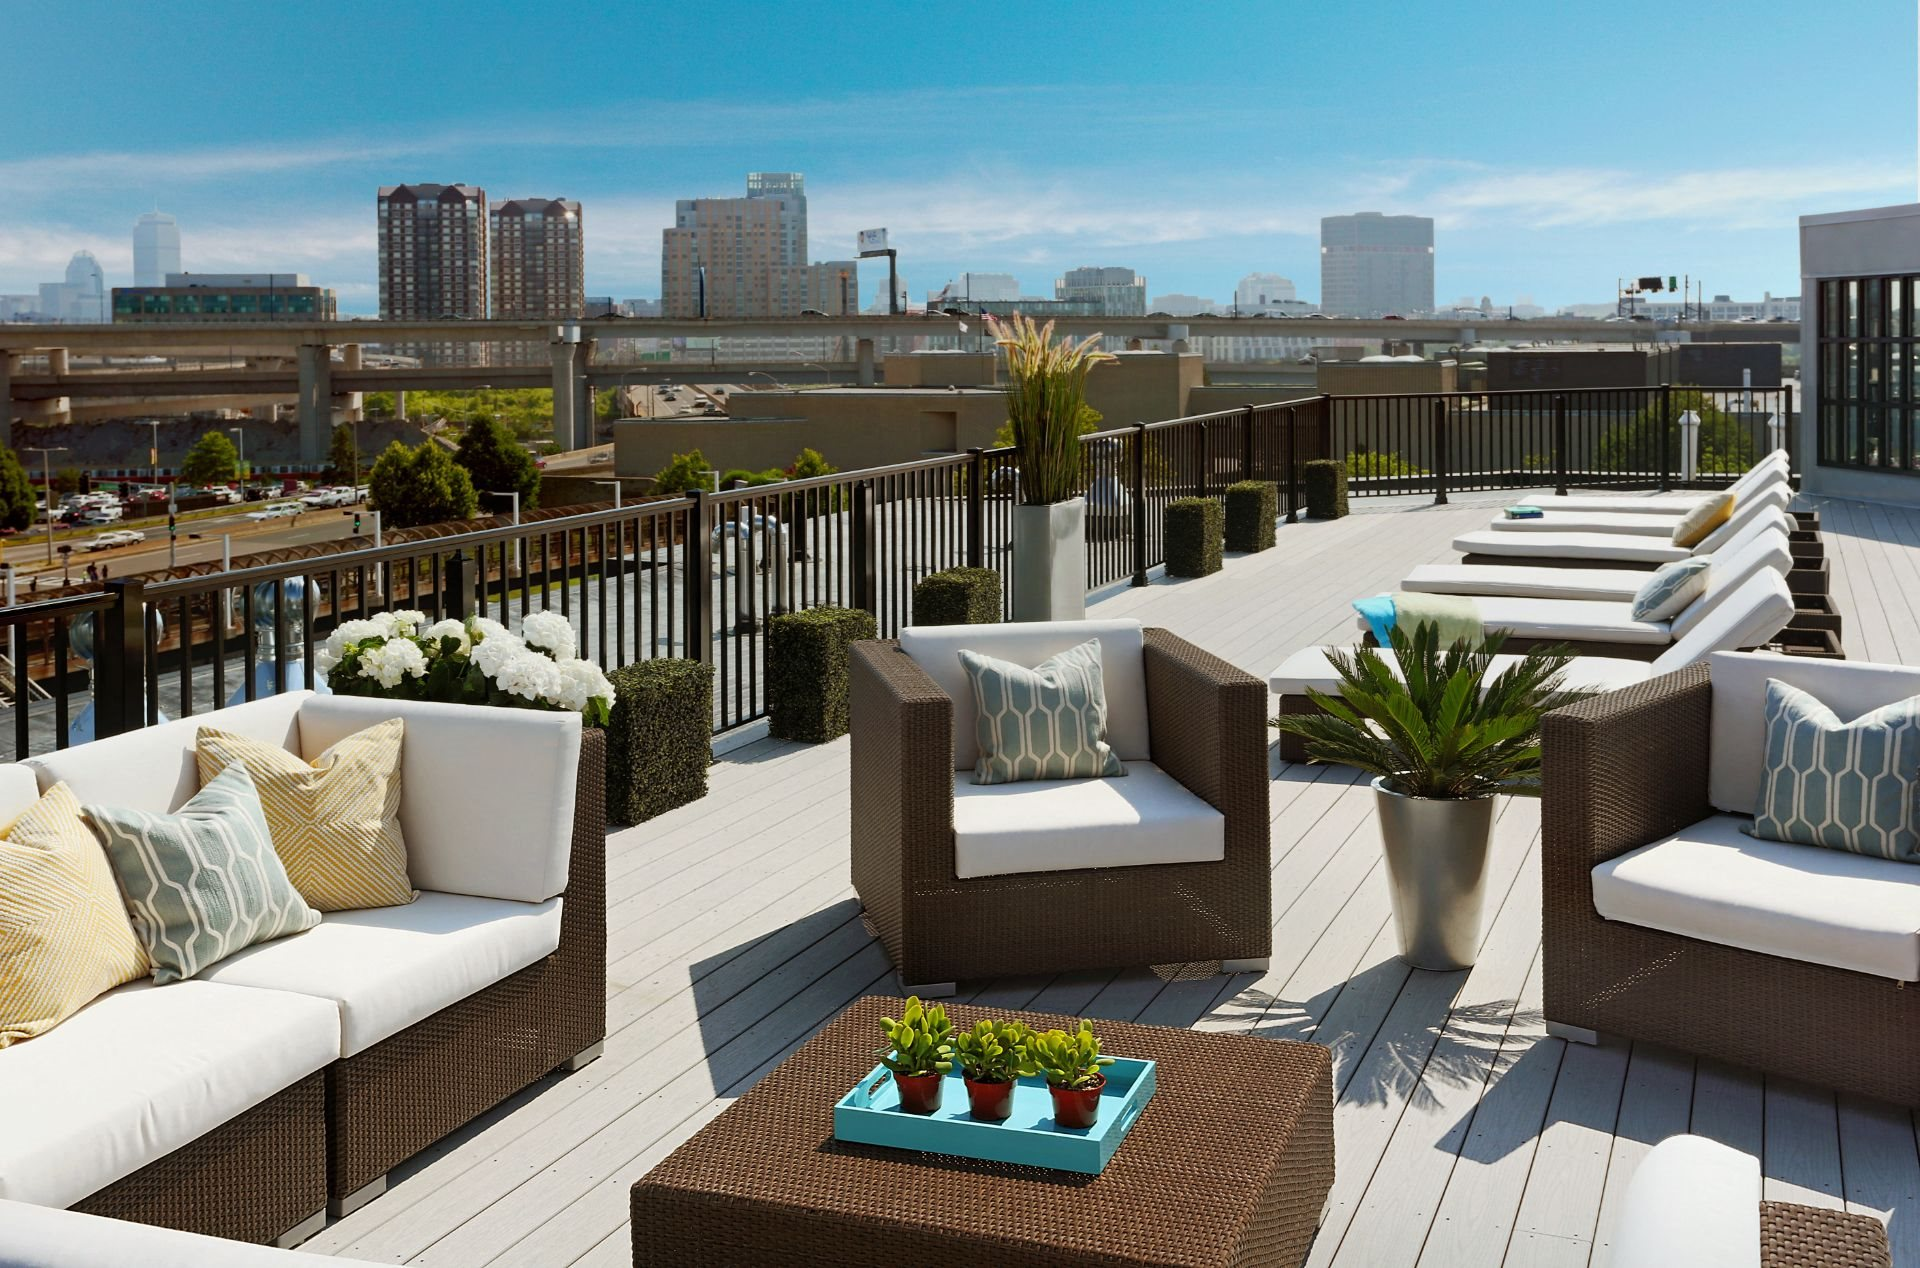 Rooftop Skydeck with Outdoor Living, Sundeck with Lounges and Spectacular Views of Boston City Skyline at Gatehouse 75, Charlestown, MA, 02129